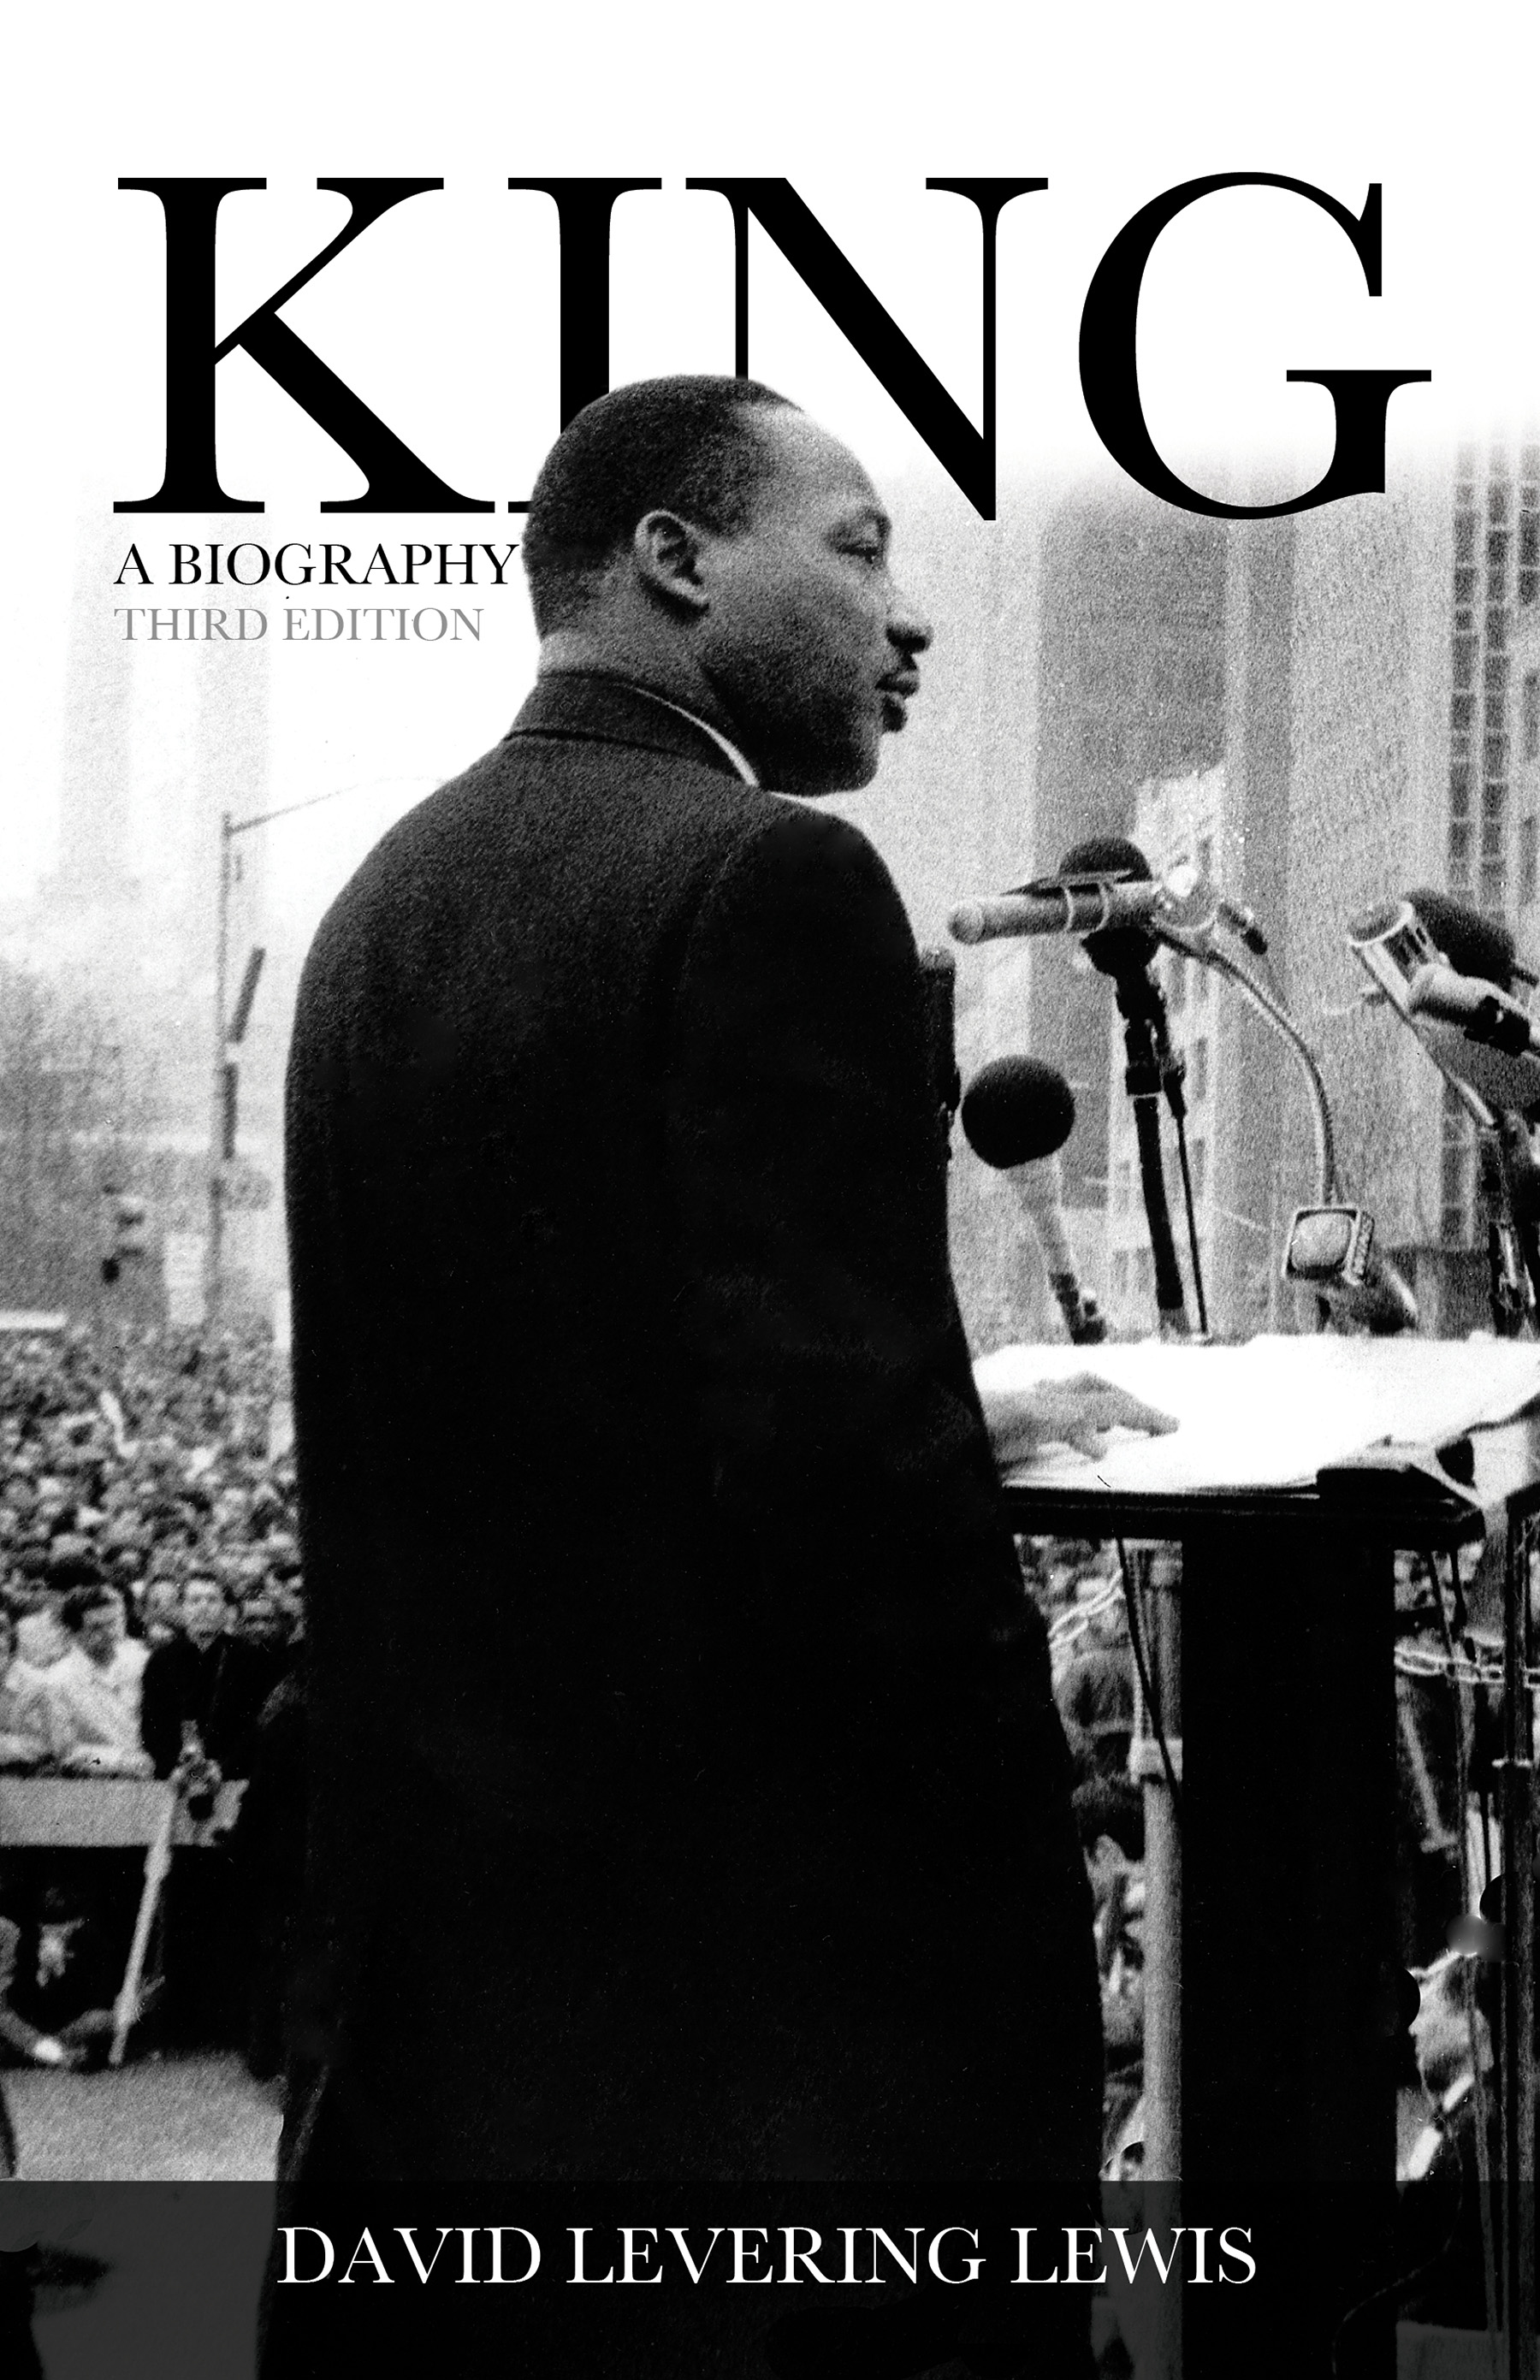 a biography of martin luther kings letter from birmingham jail Letter from a birmingham jail [king birmingham is probably the most thoroughly segregated city in the united states , martin luther king, jr published in.